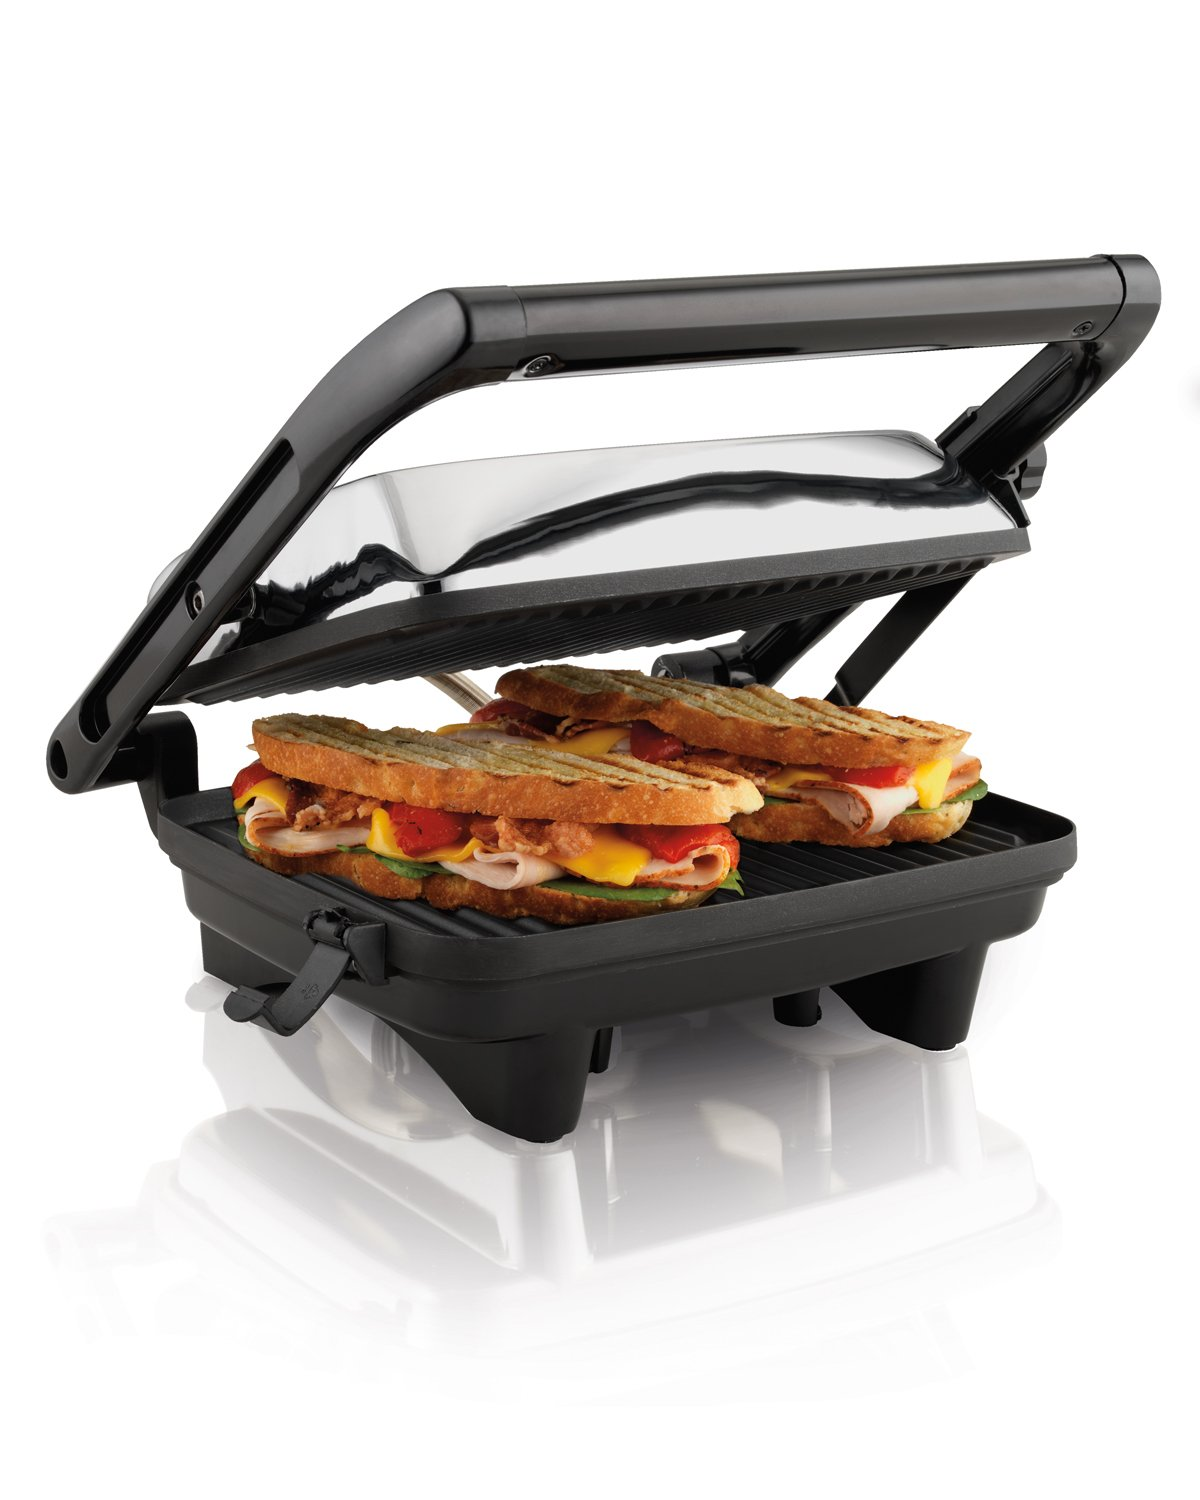 Panini Press Panini Press Sandwich Maker